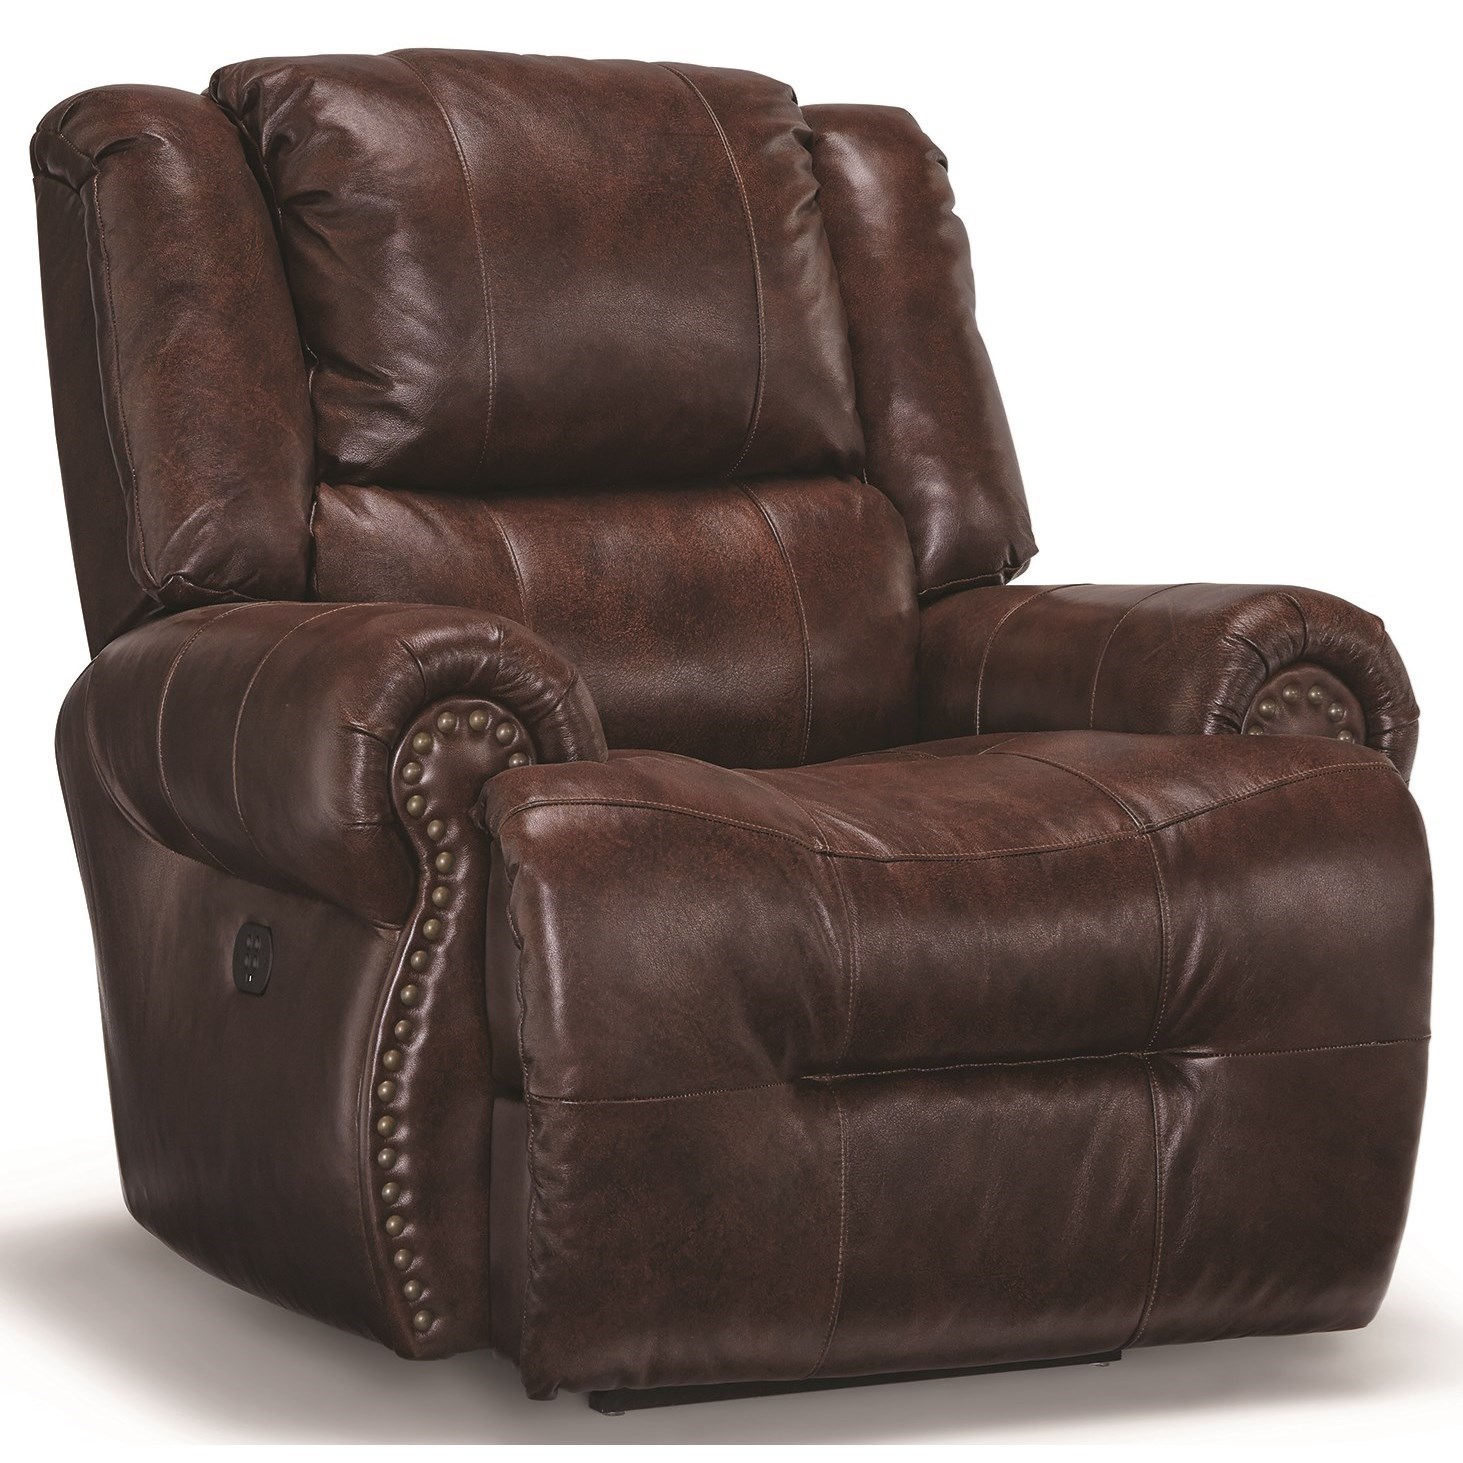 Genet Swivel Glider Recliner by Best Home Furnishings at VanDrie Home Furnishings